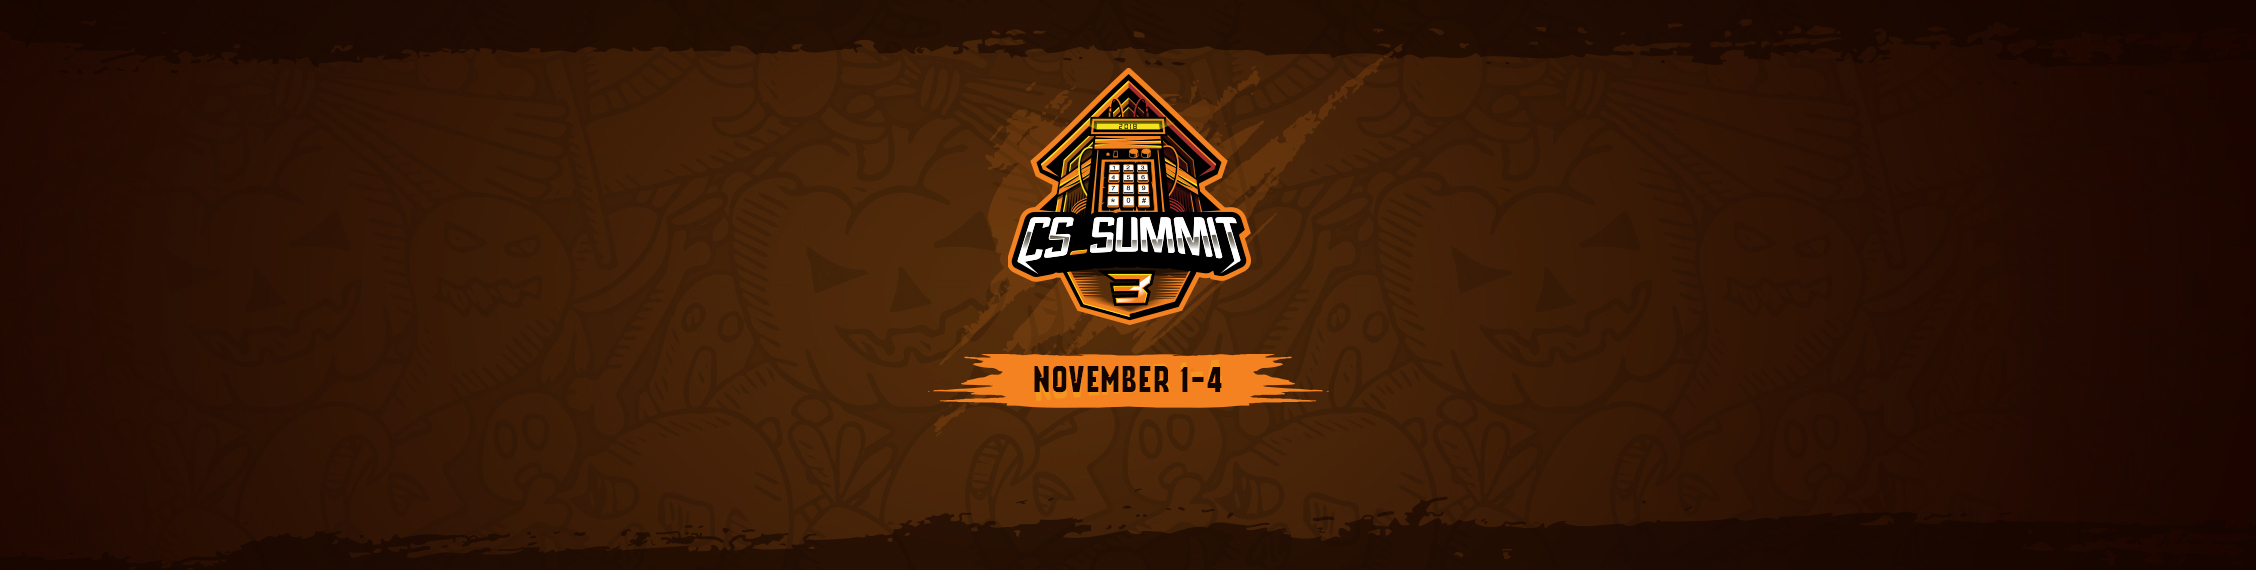 cs_summit 3